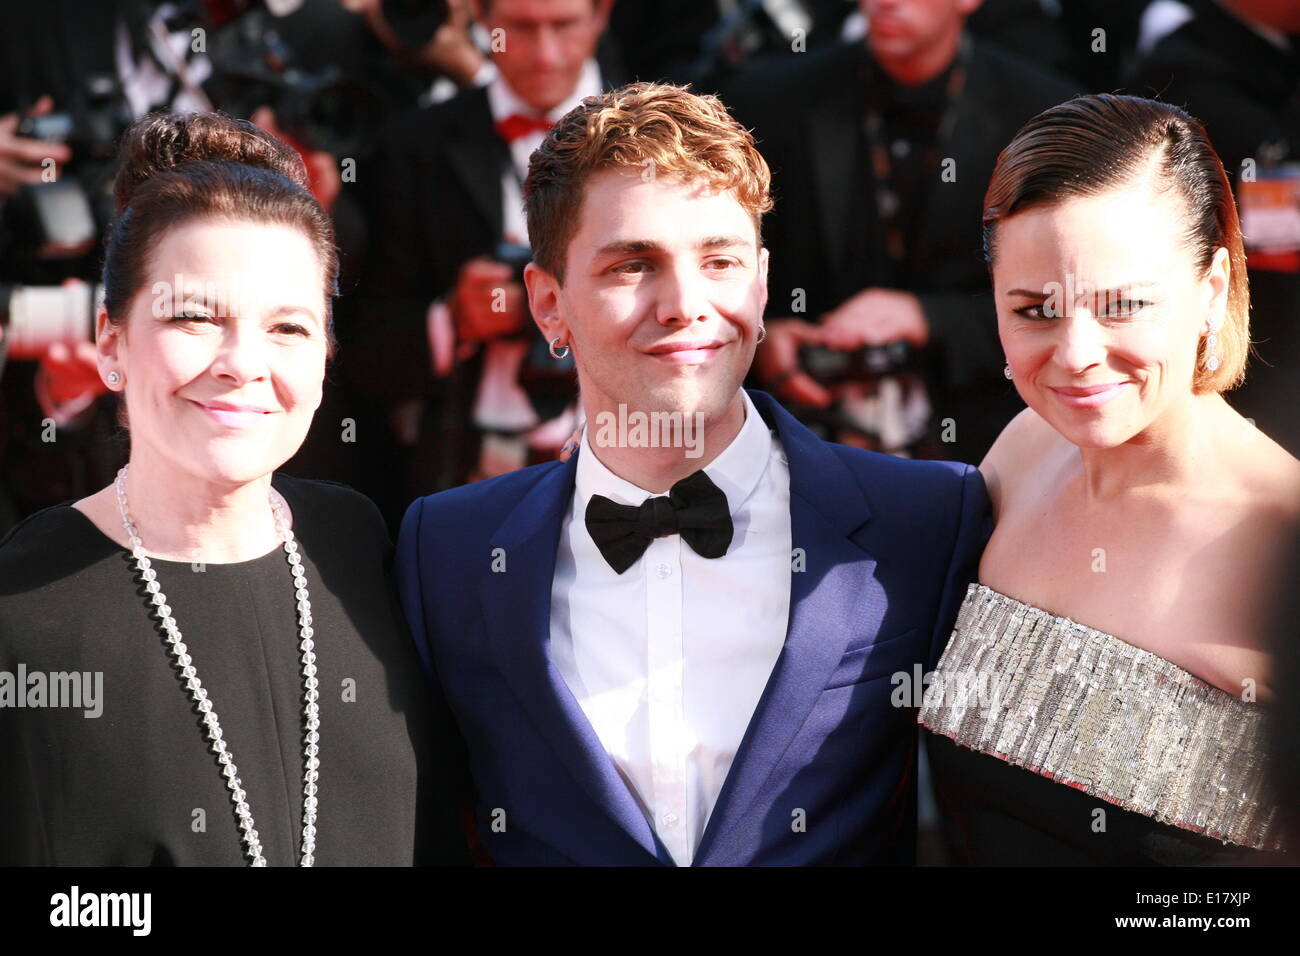 Antoine-Olivier Pilon, Anne Dorval. director Xavier Dolan at the Palme d'Or  Closing Awards Ceremony red carpet at the 67th Cannes Film Festival France. Saturday 24th May 2014 in Cannes Film Festival, France. - Stock Image